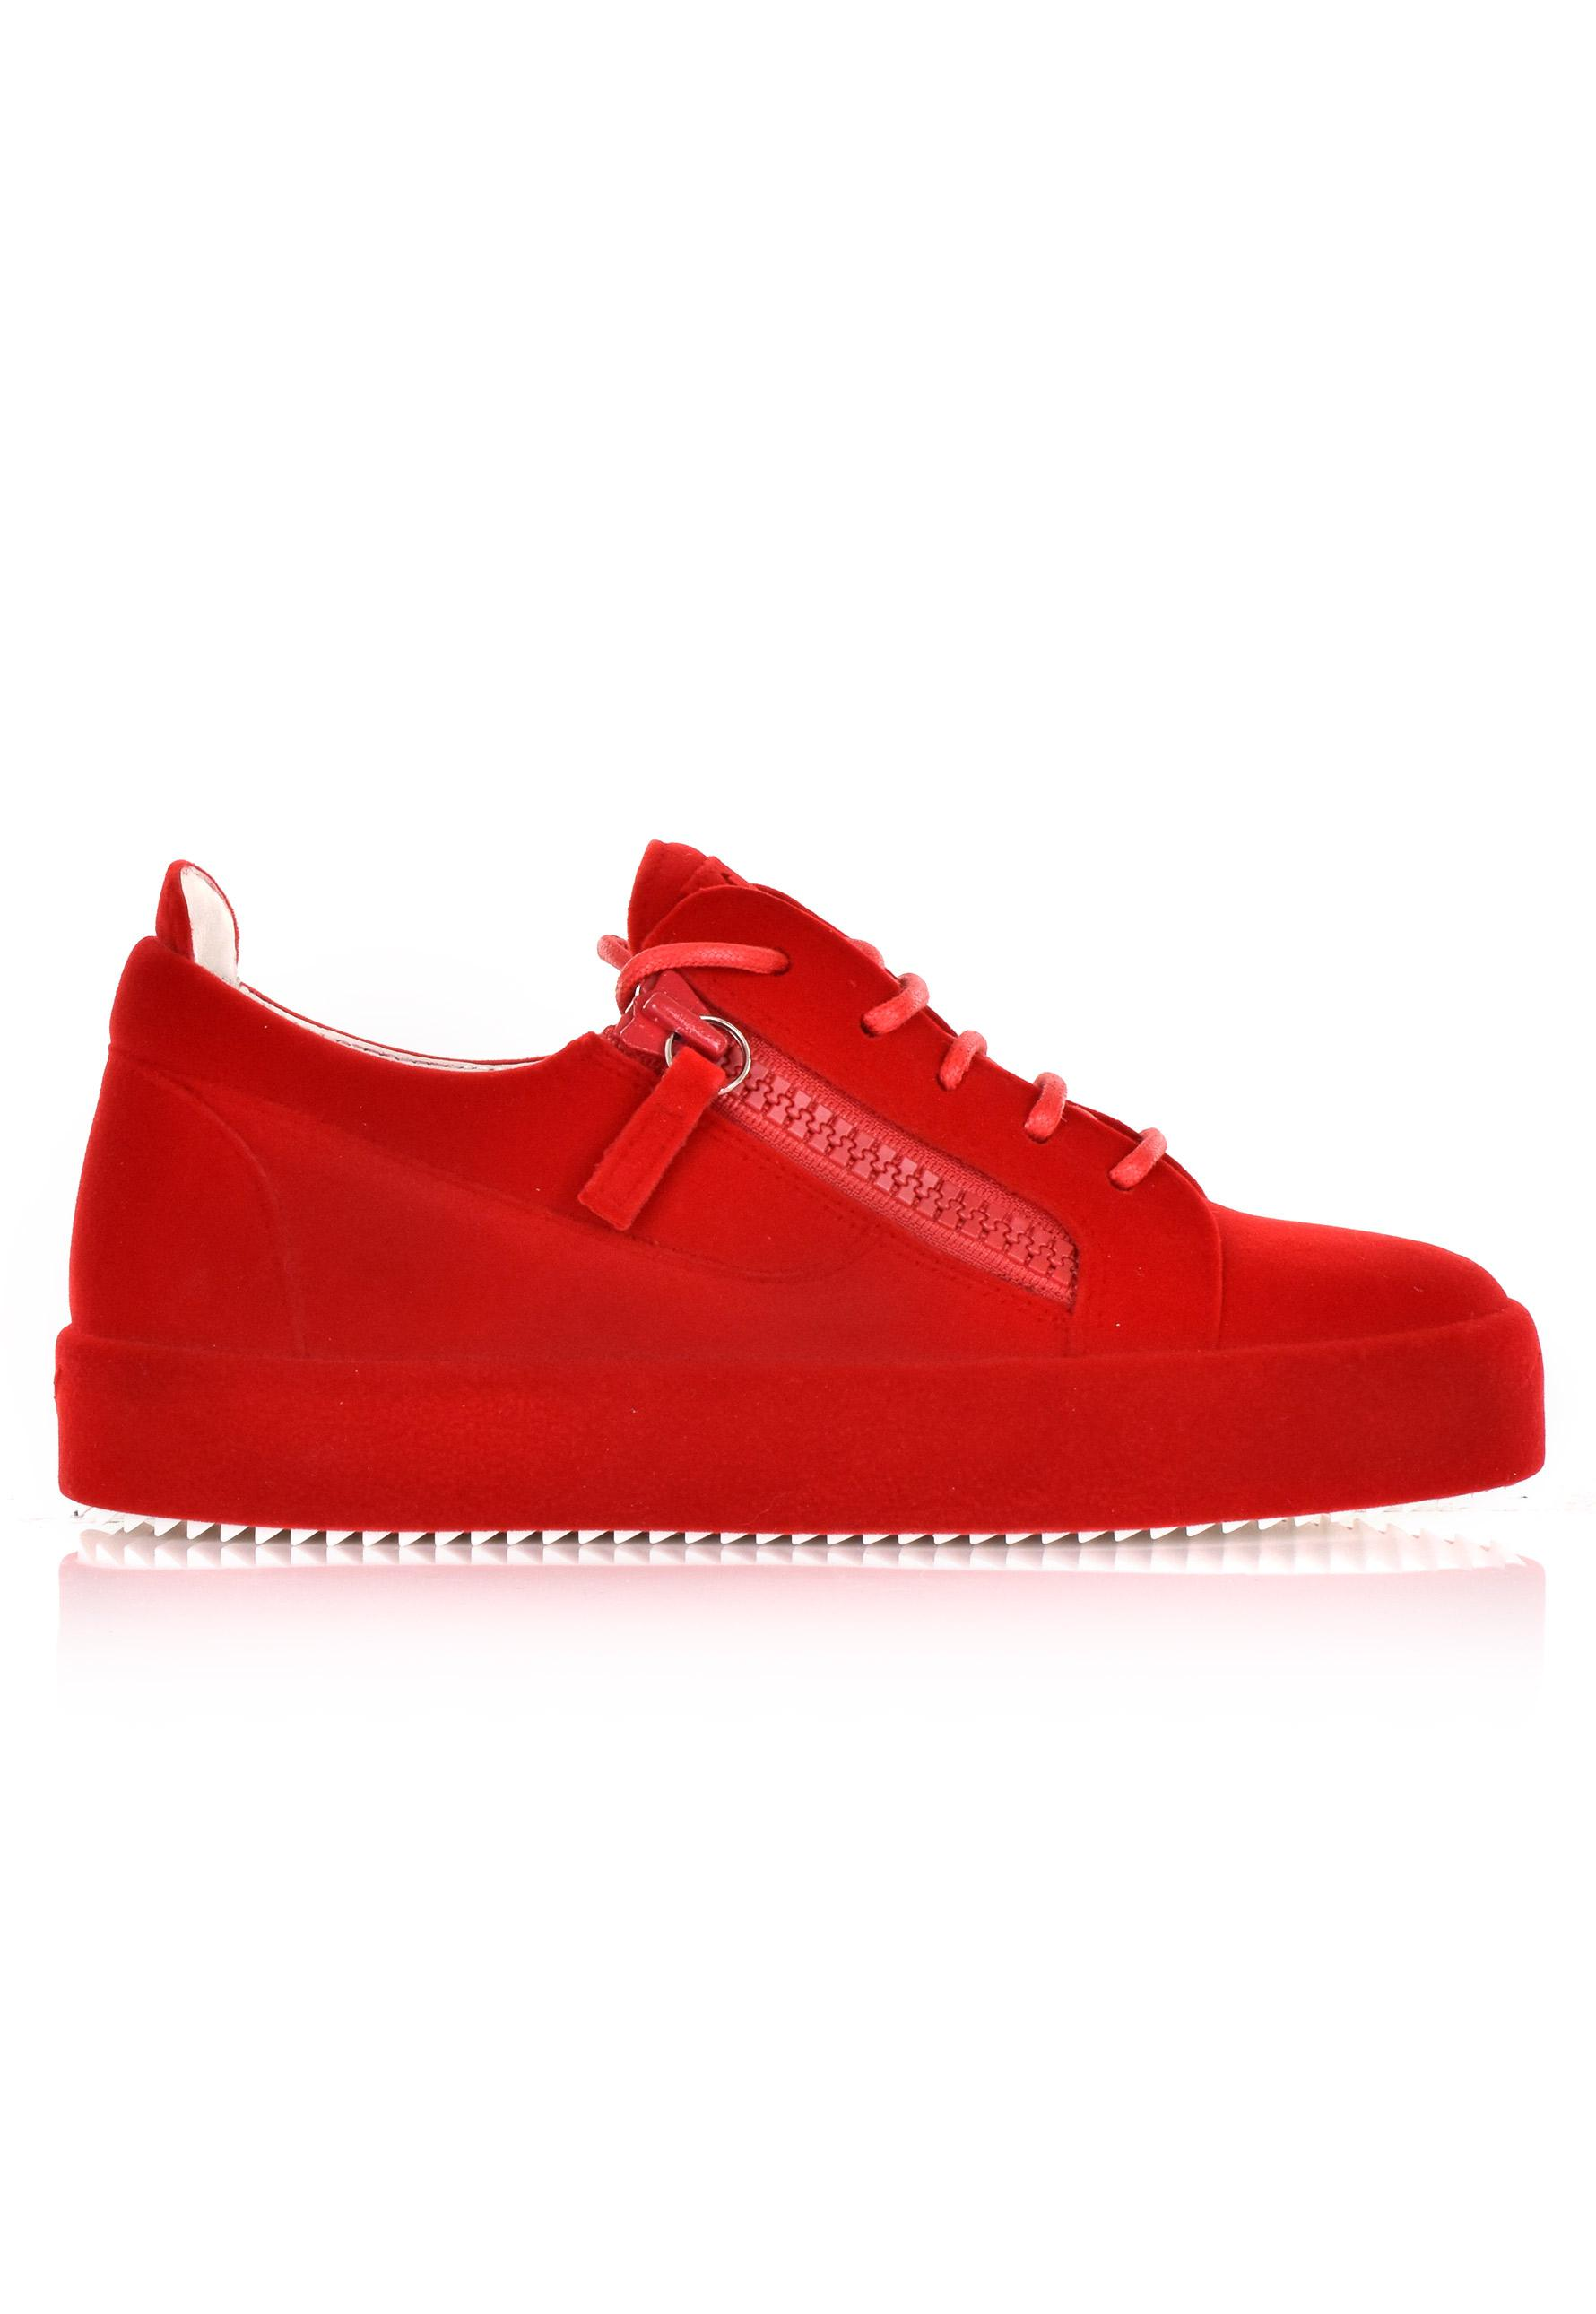 93536fe5be4 Lyst - Giuseppe Zanotti Women s Lace Up Flocked Sneakers Red in Red ...